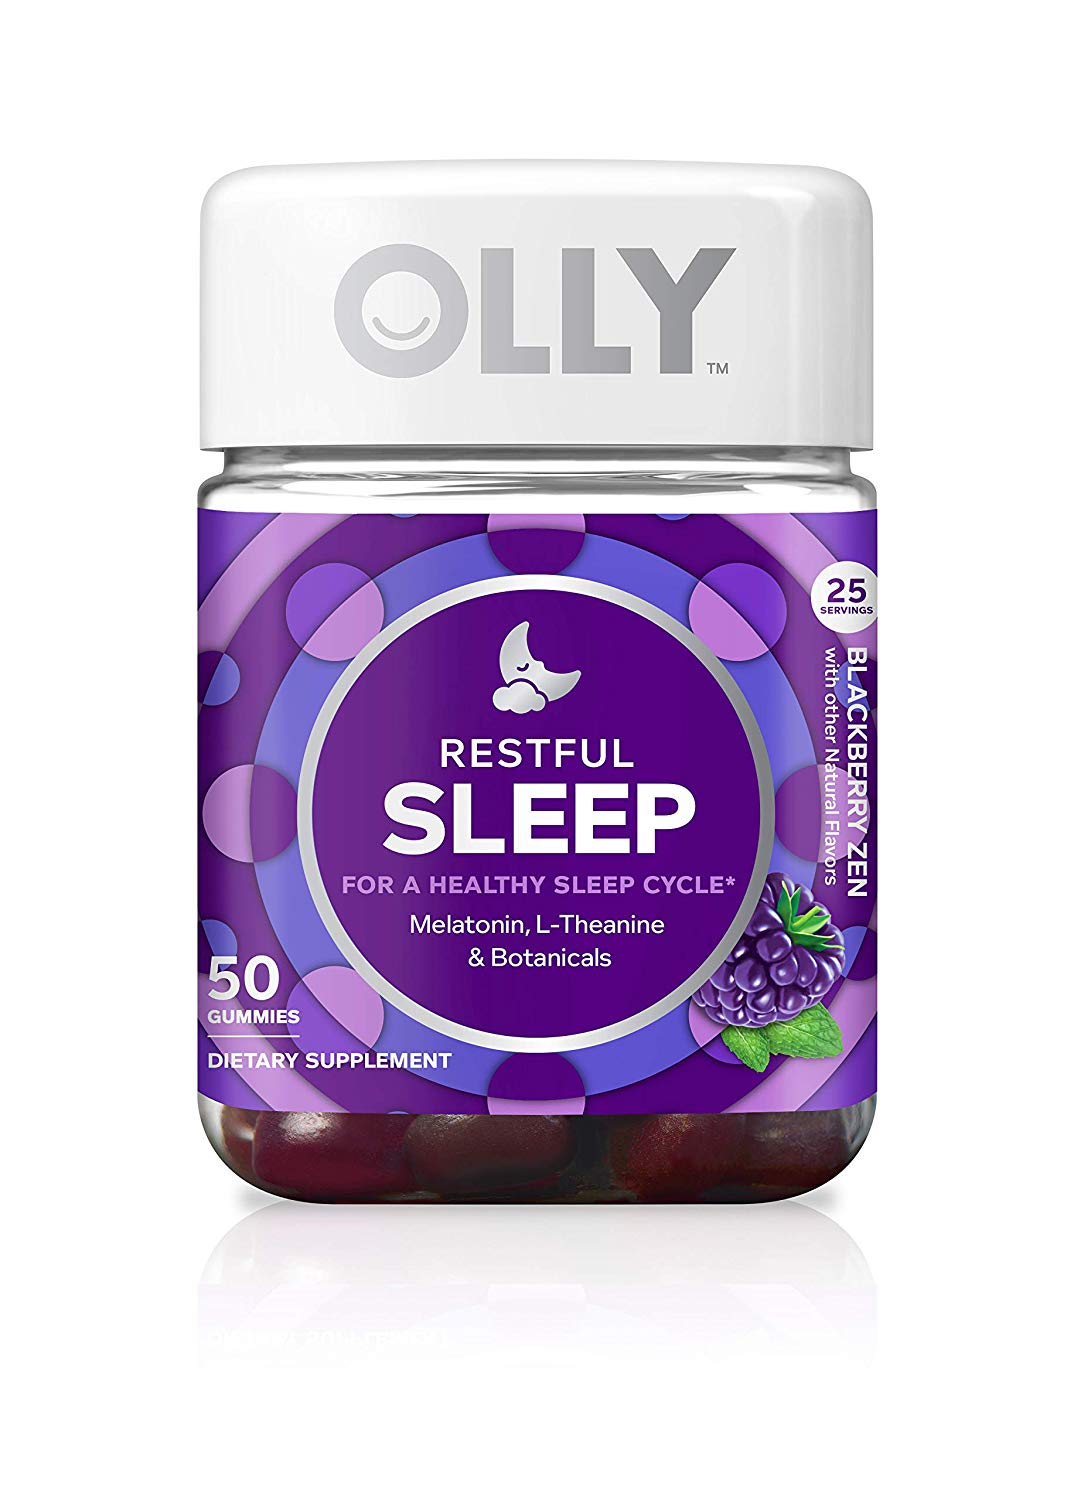 OLLY Natural Sleep Aids Review by www.snoremagazine.com